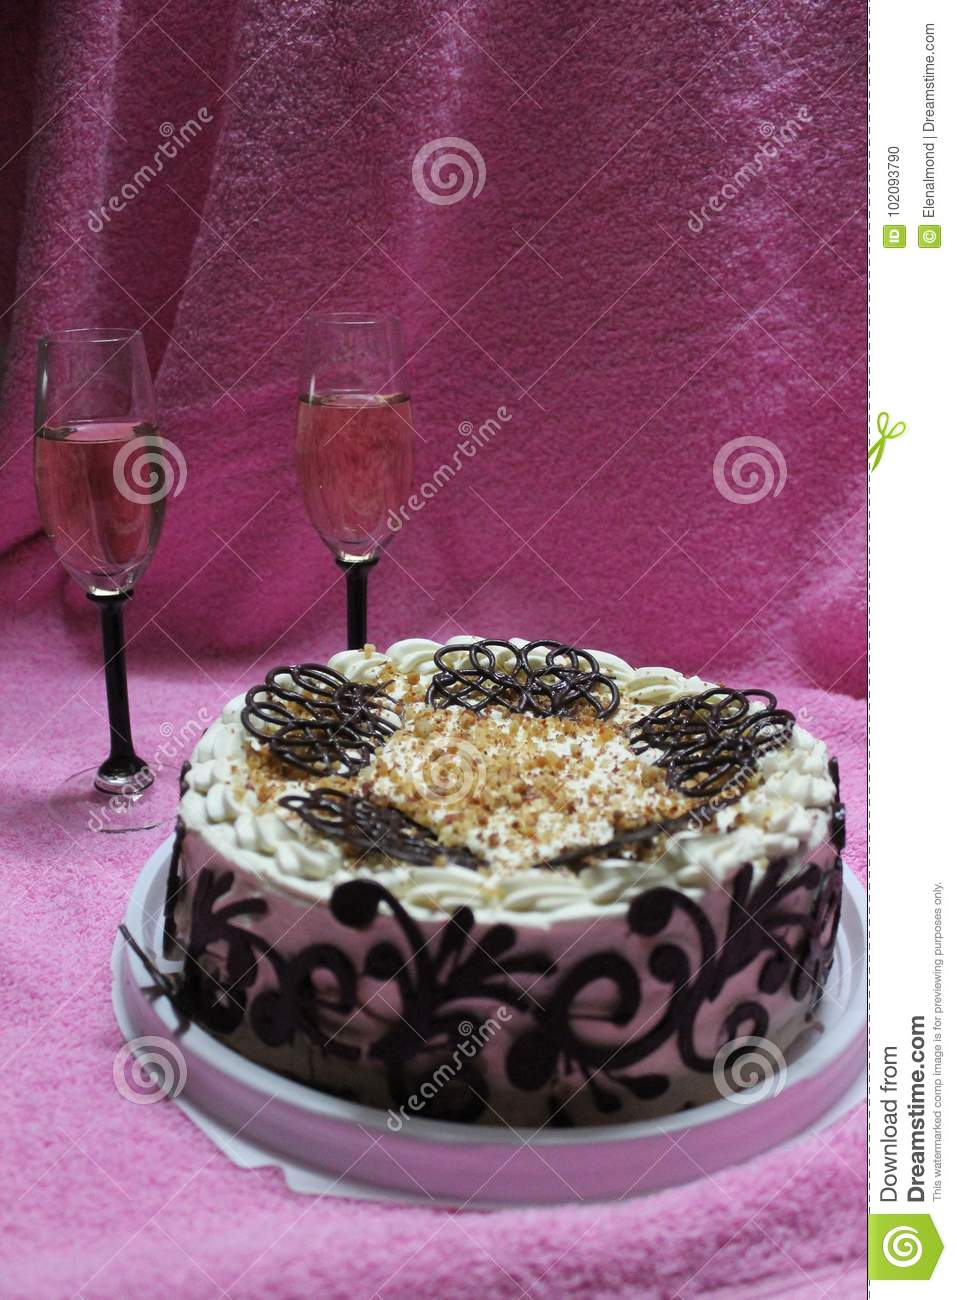 Birthday Cake Stock Photo Image Of Adorn Fall Aroma 102093790